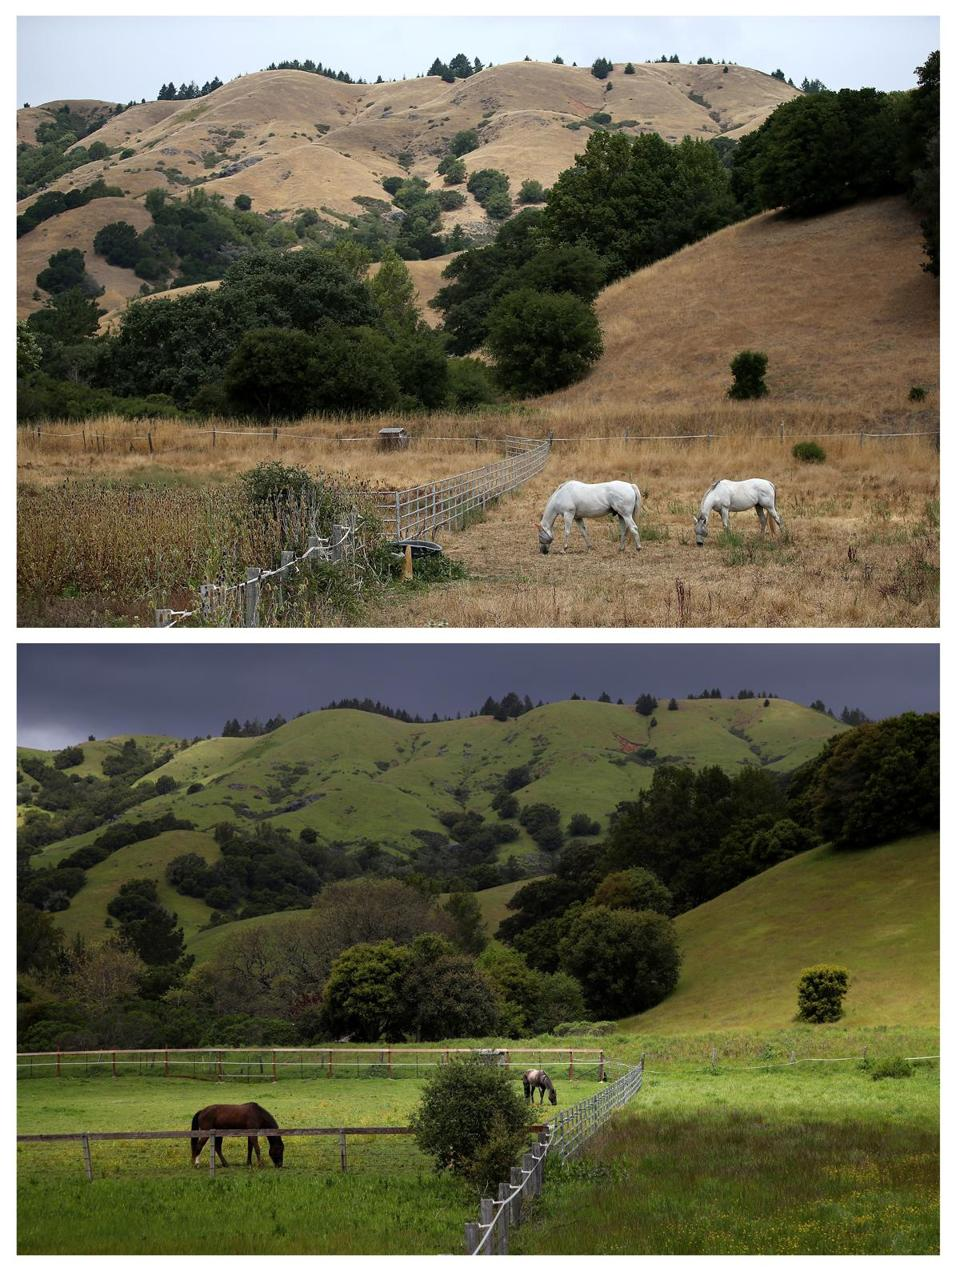 California drought: then and now